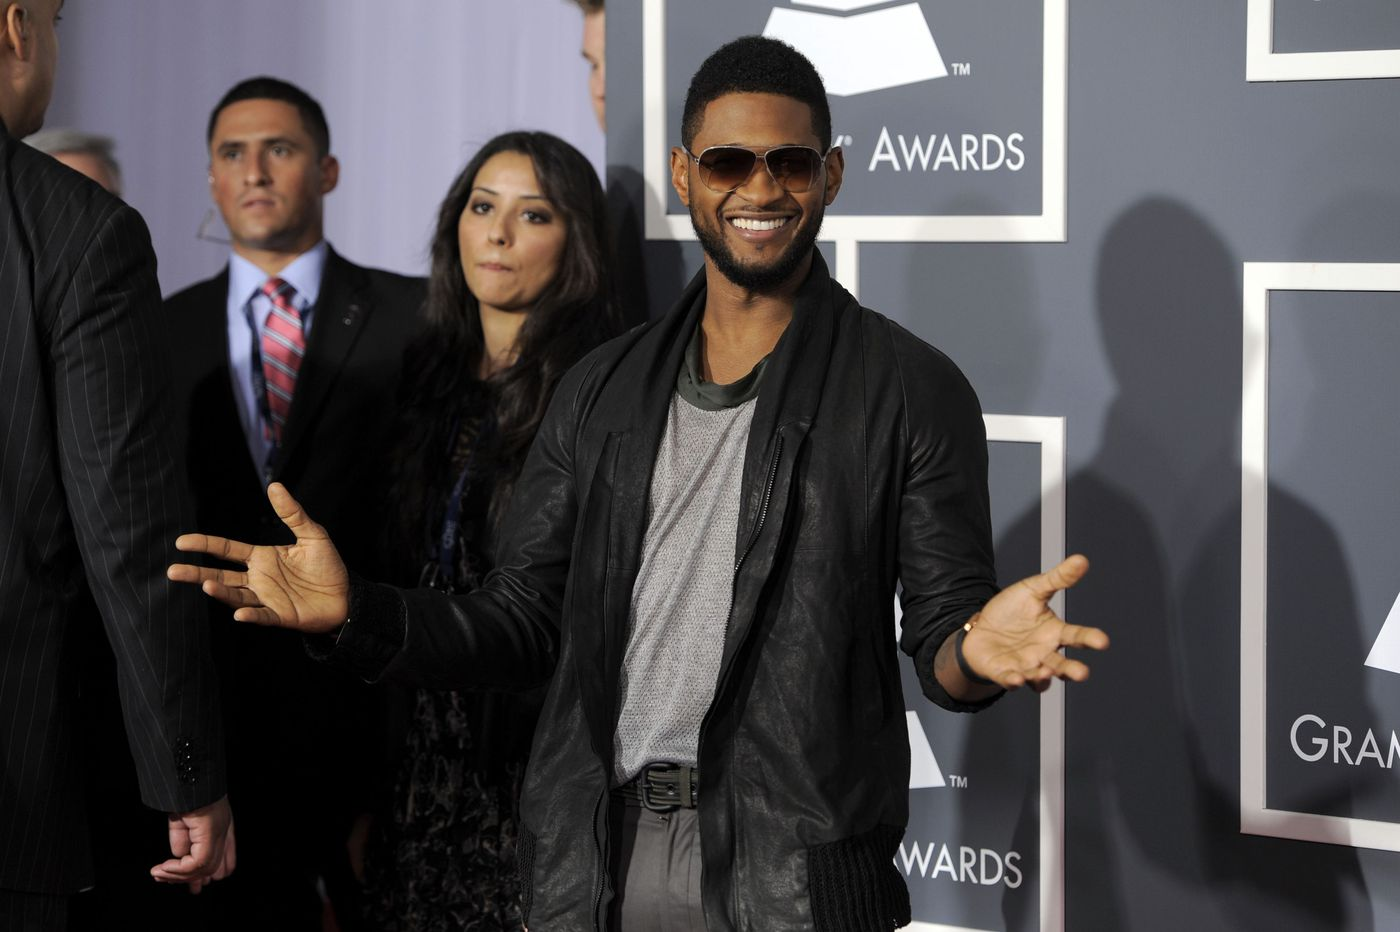 Philly songwriter wins $44 mil in suit over Usher song